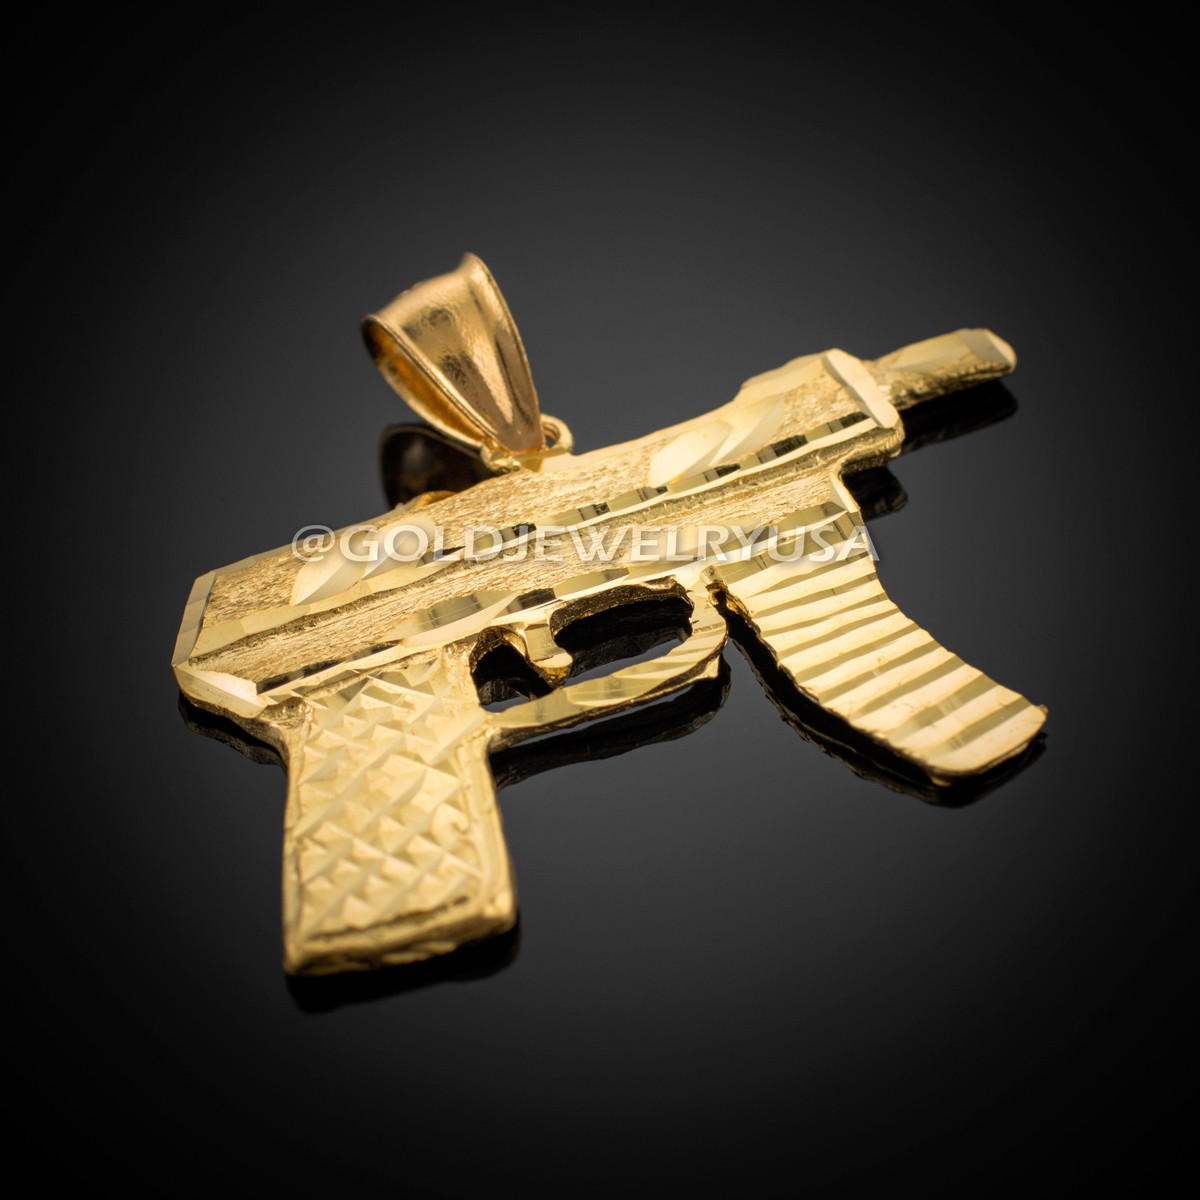 Gold Machine Gun Pistol Diamond Cut Pendant